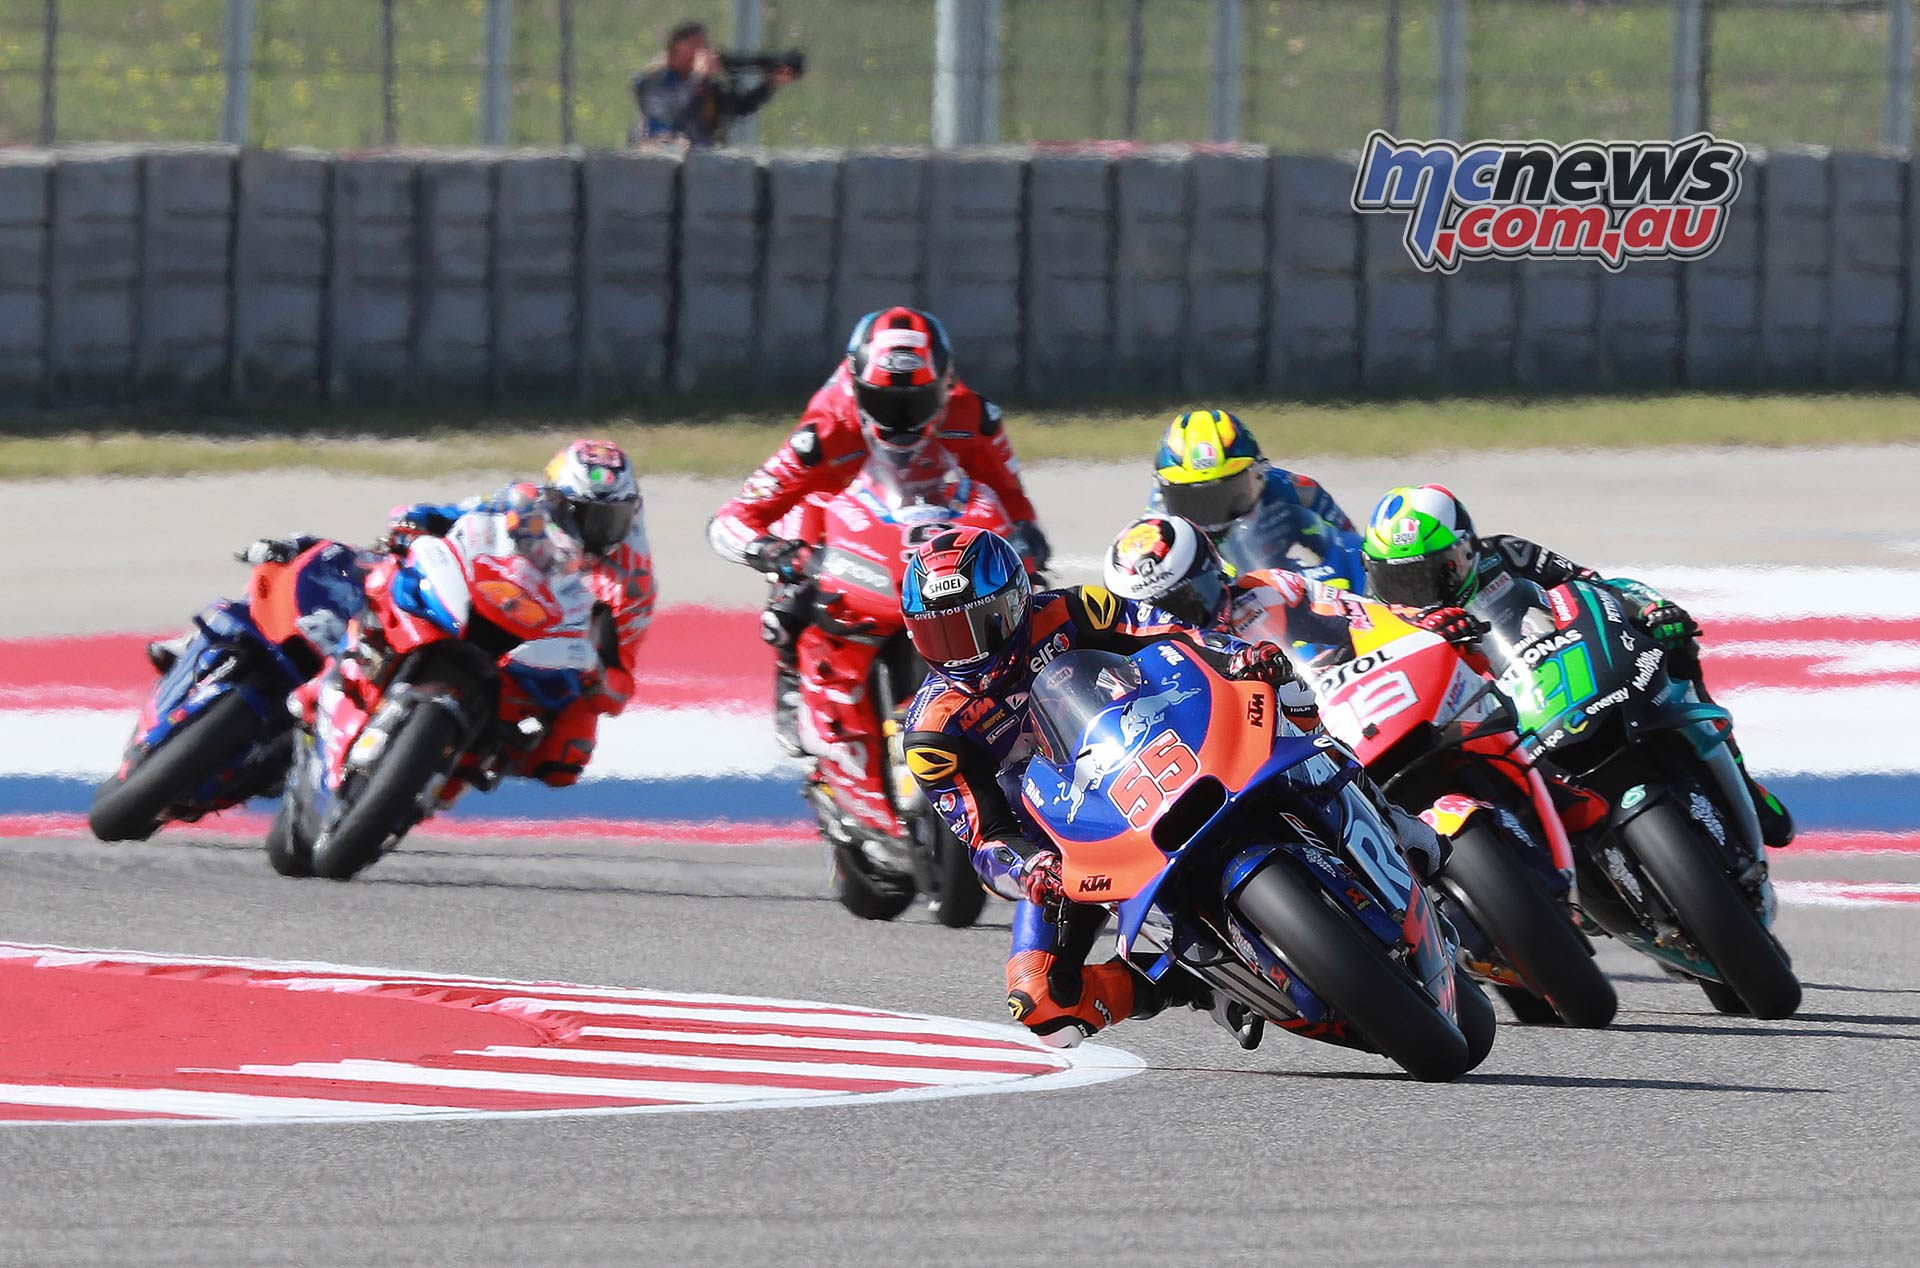 Marquez scores pole for COTA ahead of Rossi & Crutchlow ...